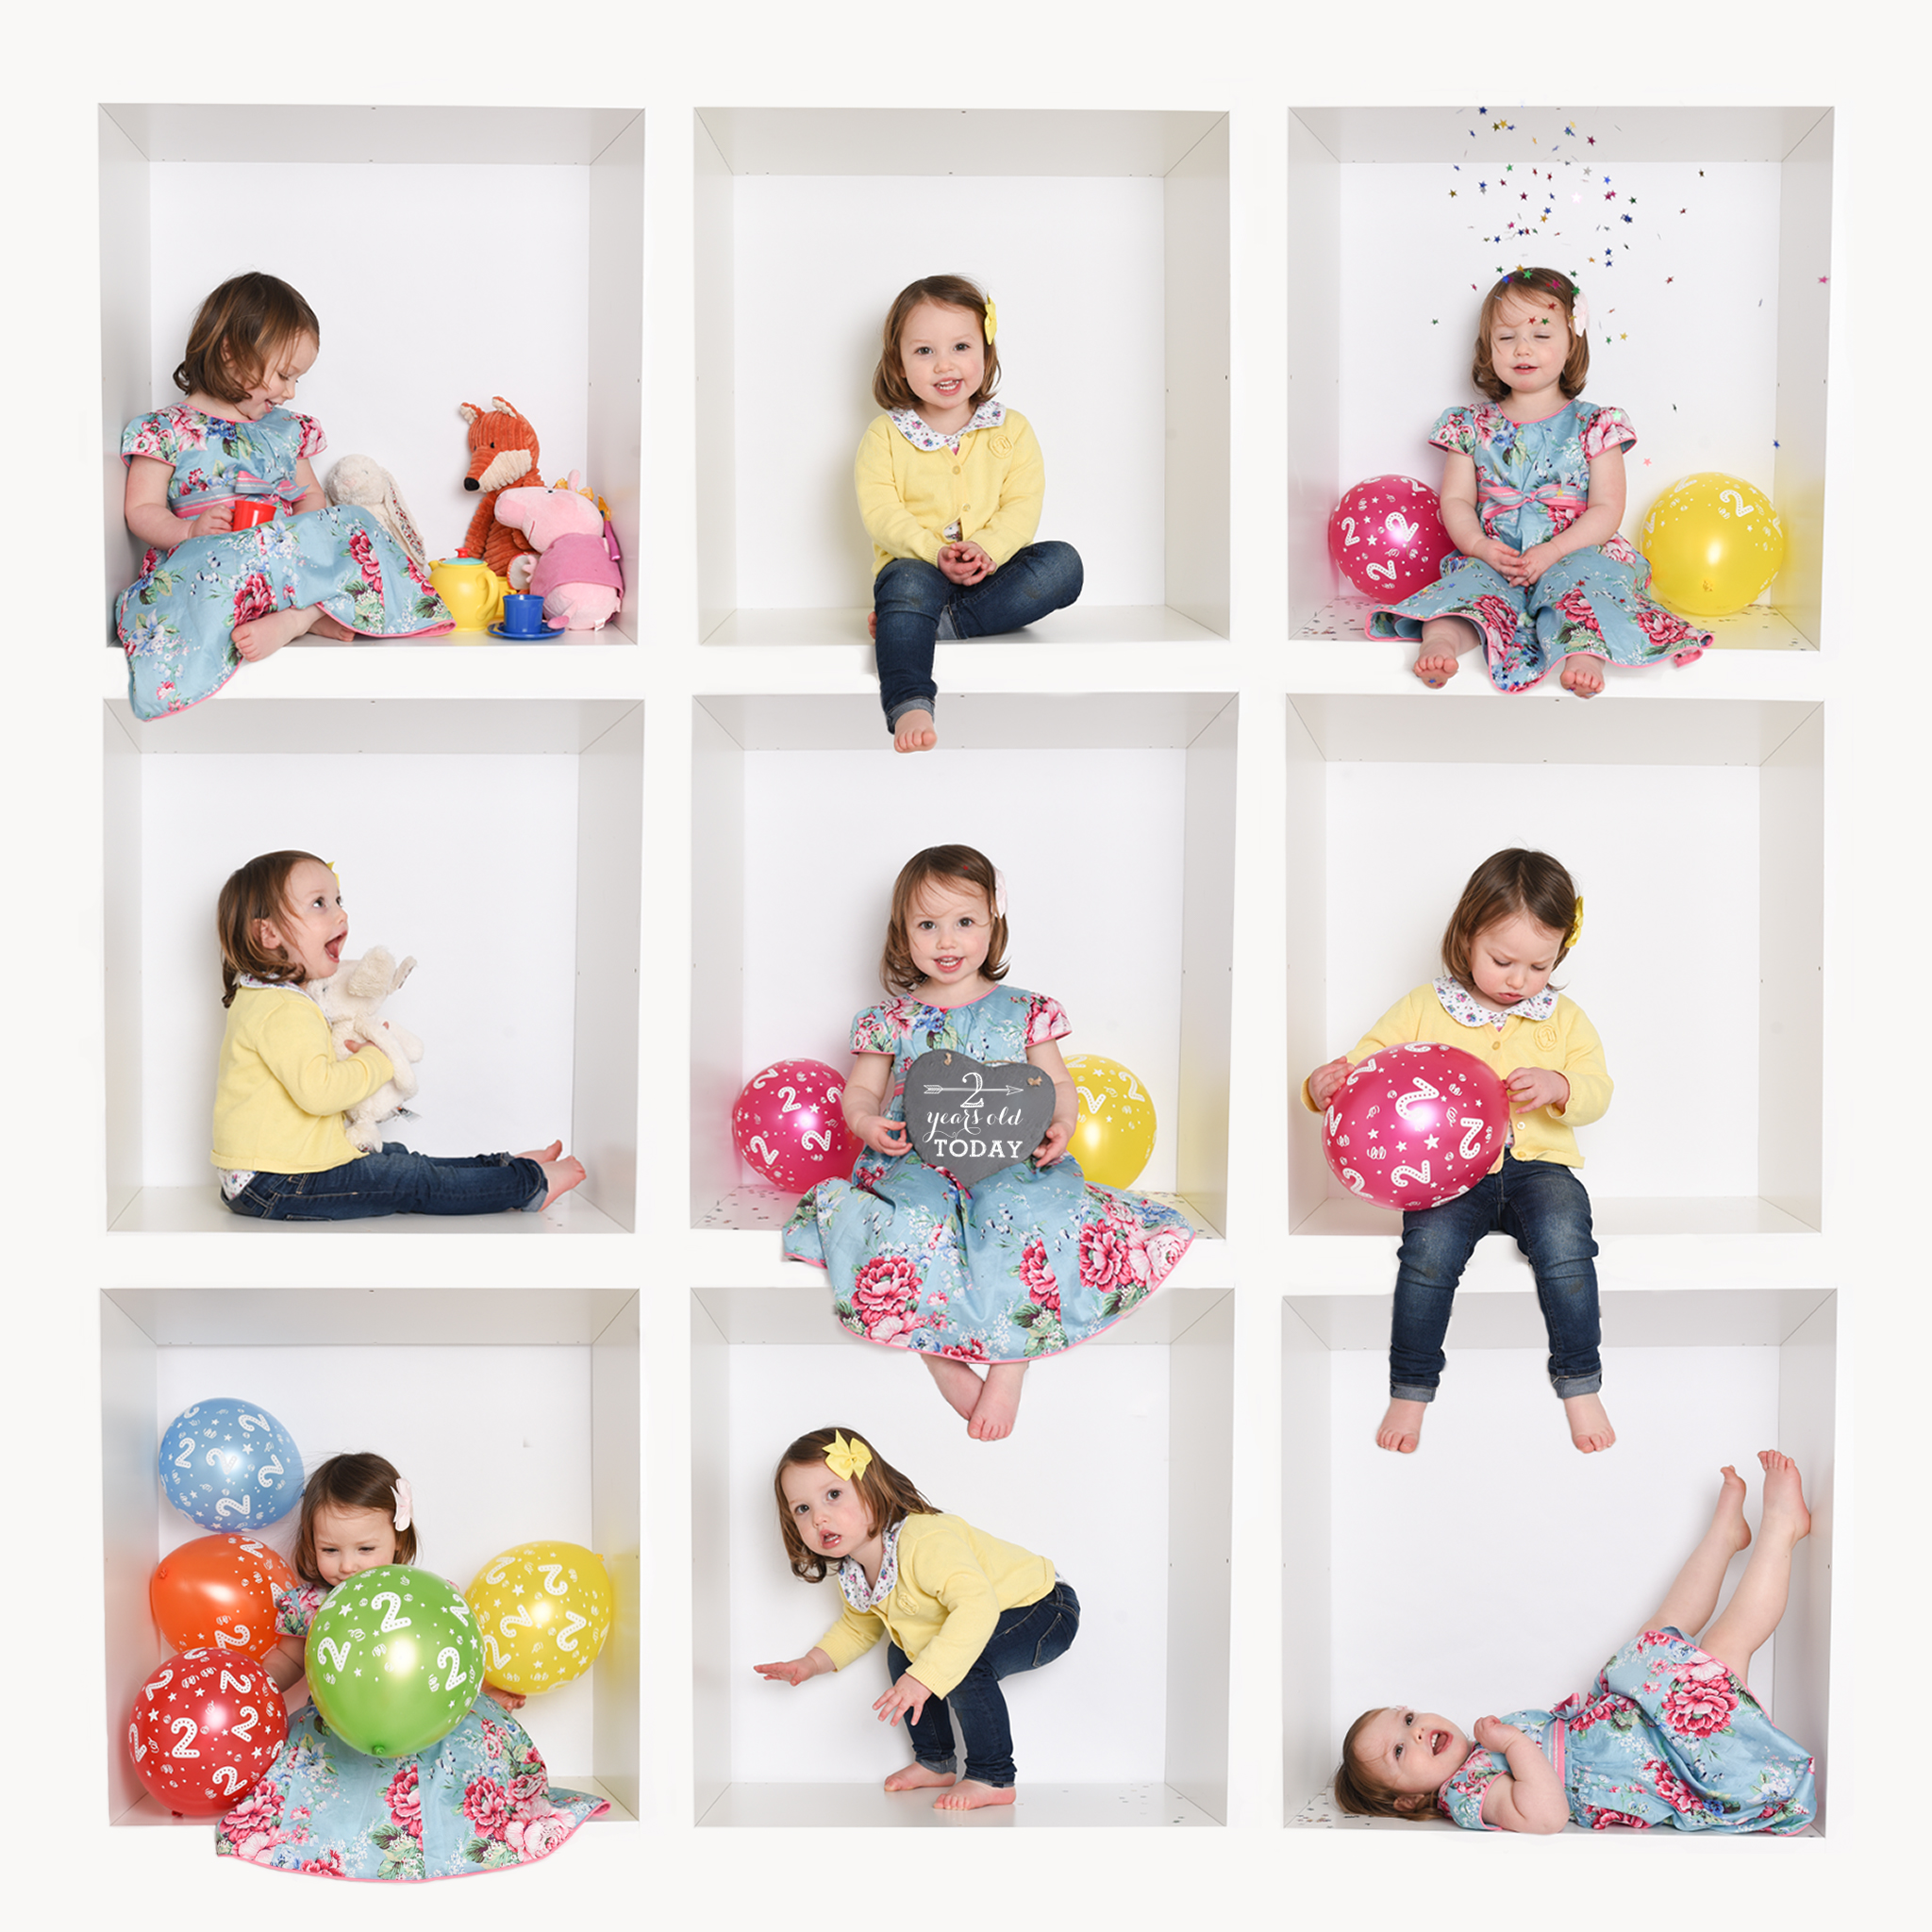 Toddler girl age 2 in colourful white box birthday photoshoot in Wallingford